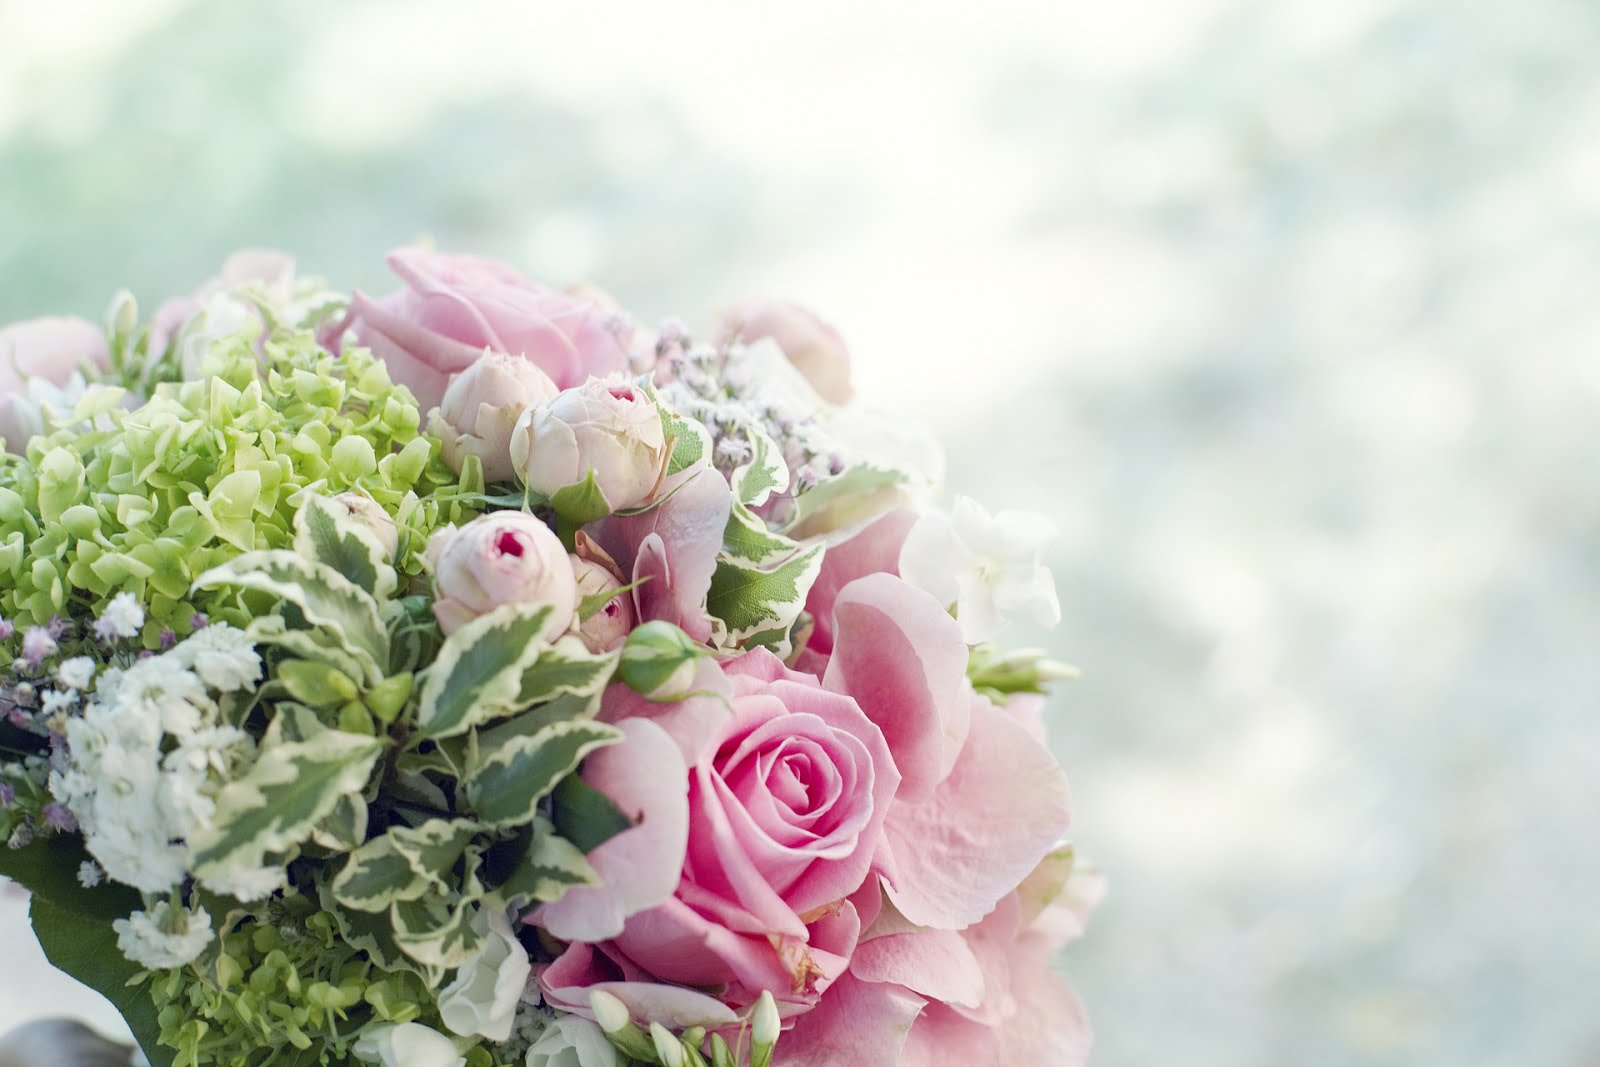 Wedding Bouquet for pink flowers with green leaves